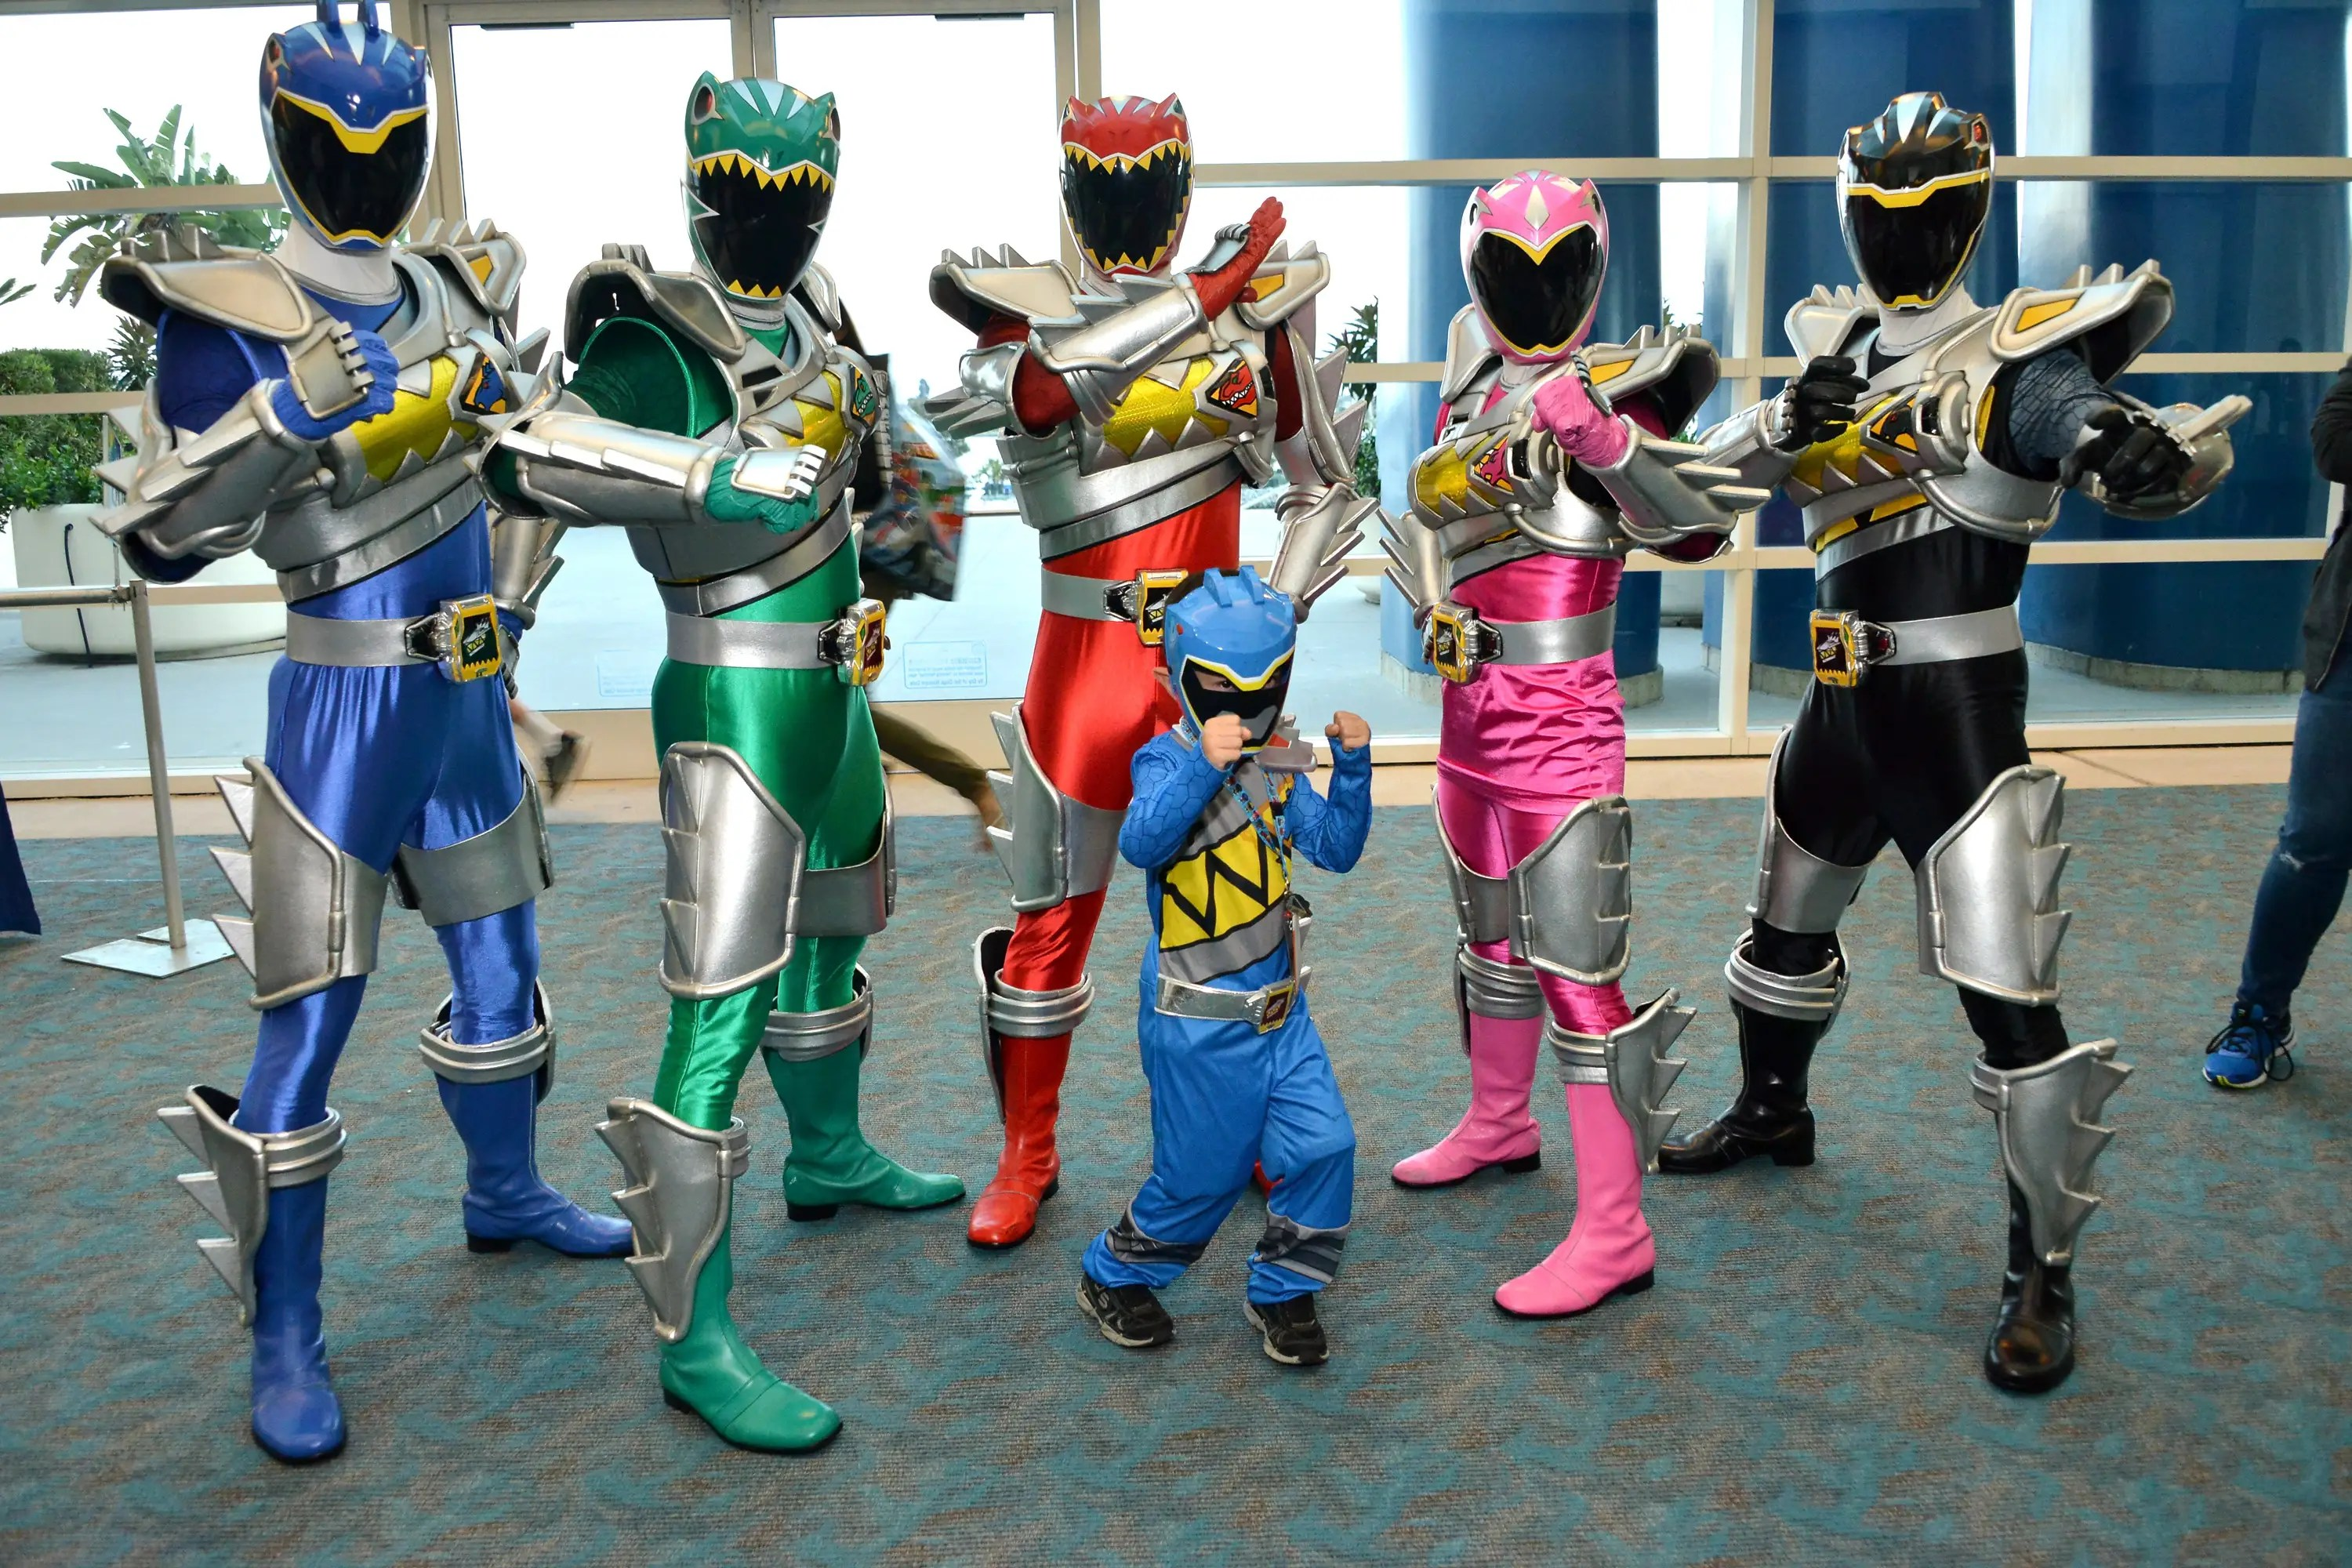 It's Morphin Time! Power Rangers Dino Super Charge characters pose with a mini Ranger.